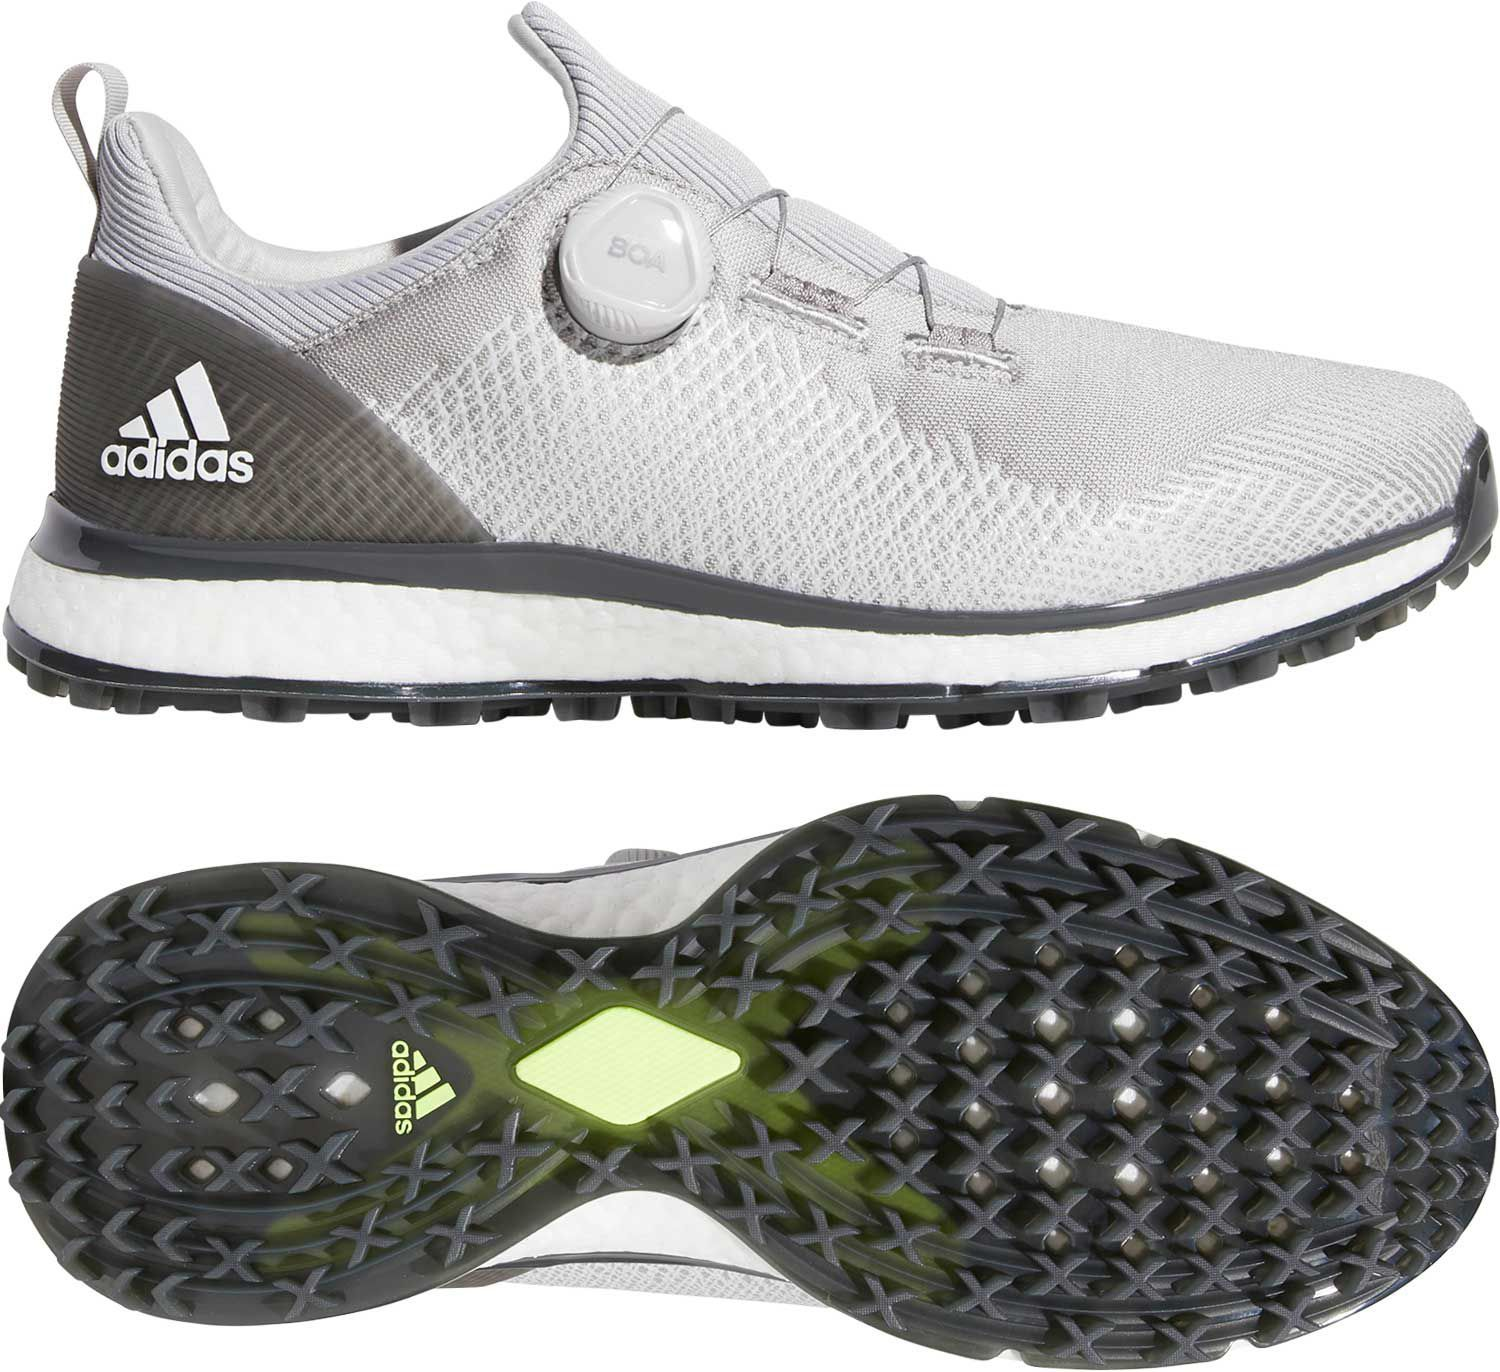 adidas Men's FORGEFIBER BOA Golf Shoes | Products in 2019